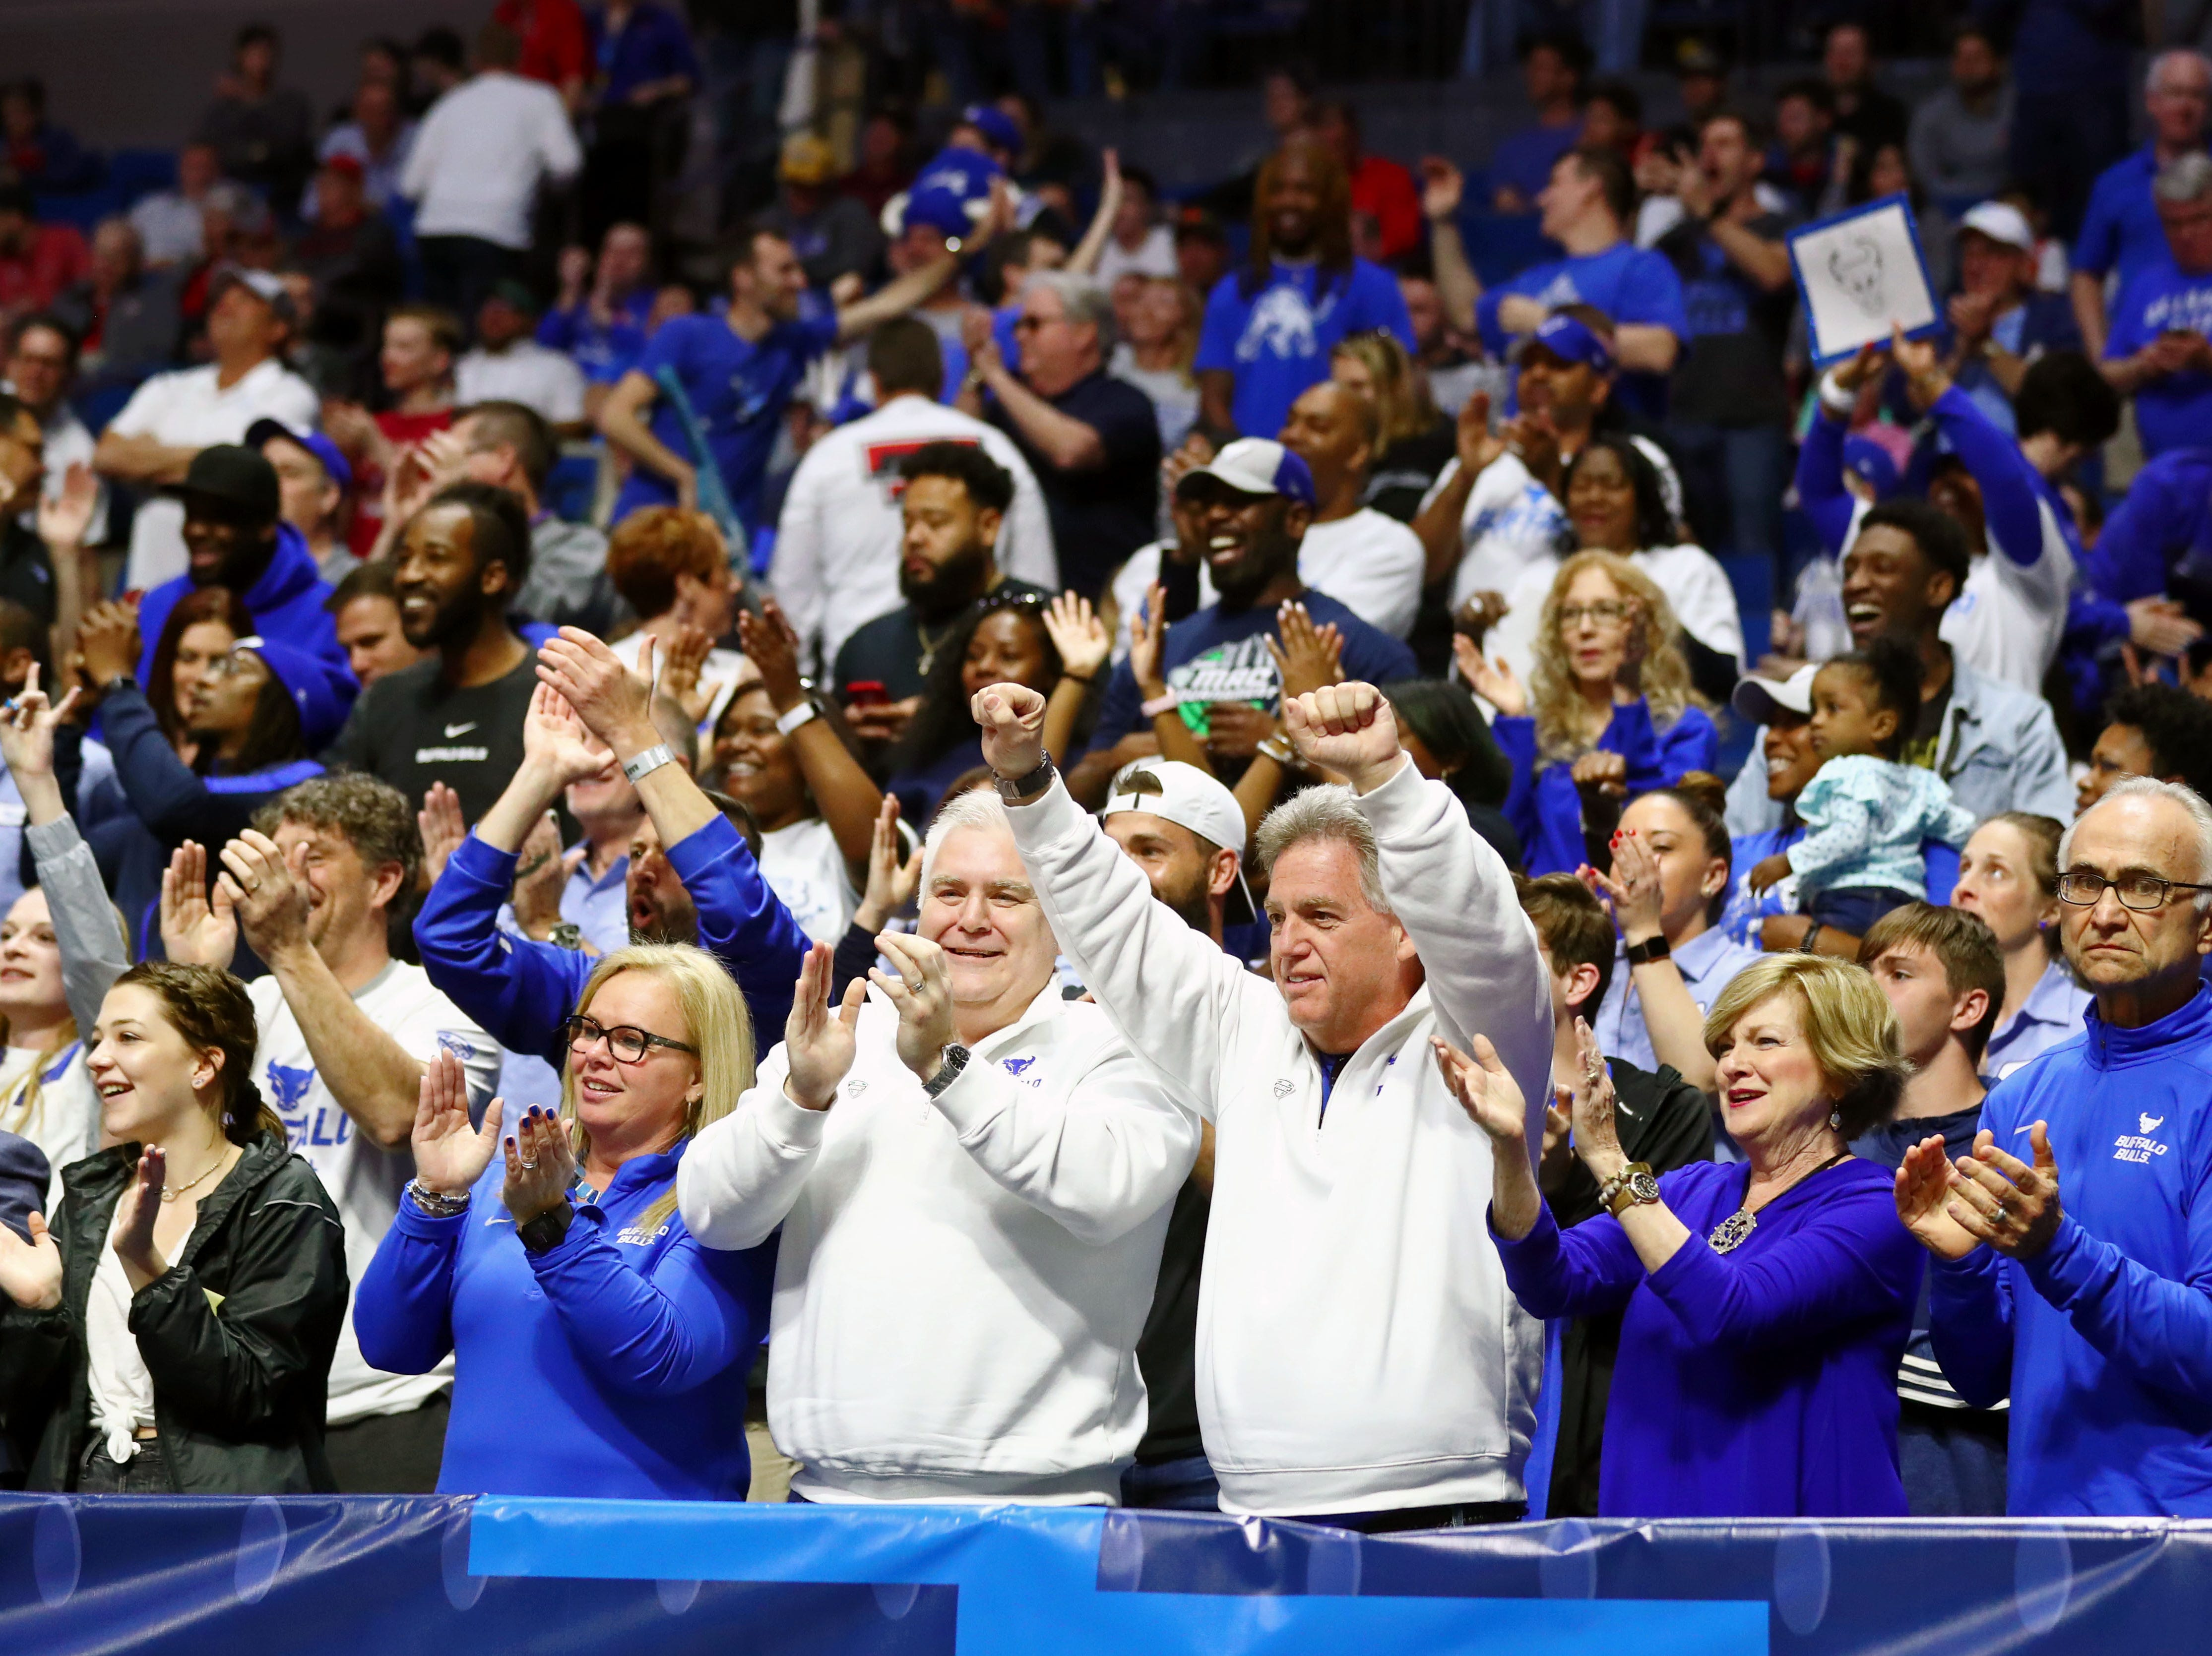 Mar 22, 2019; Tulsa, OK, USA; Buffalo Bulls fans celebrate after a play against the Arizona State Sun Devils during the first half in the first round of the 2019 NCAA Tournament at BOK Center. Mandatory Credit: Mark J. Rebilas-USA TODAY Sports